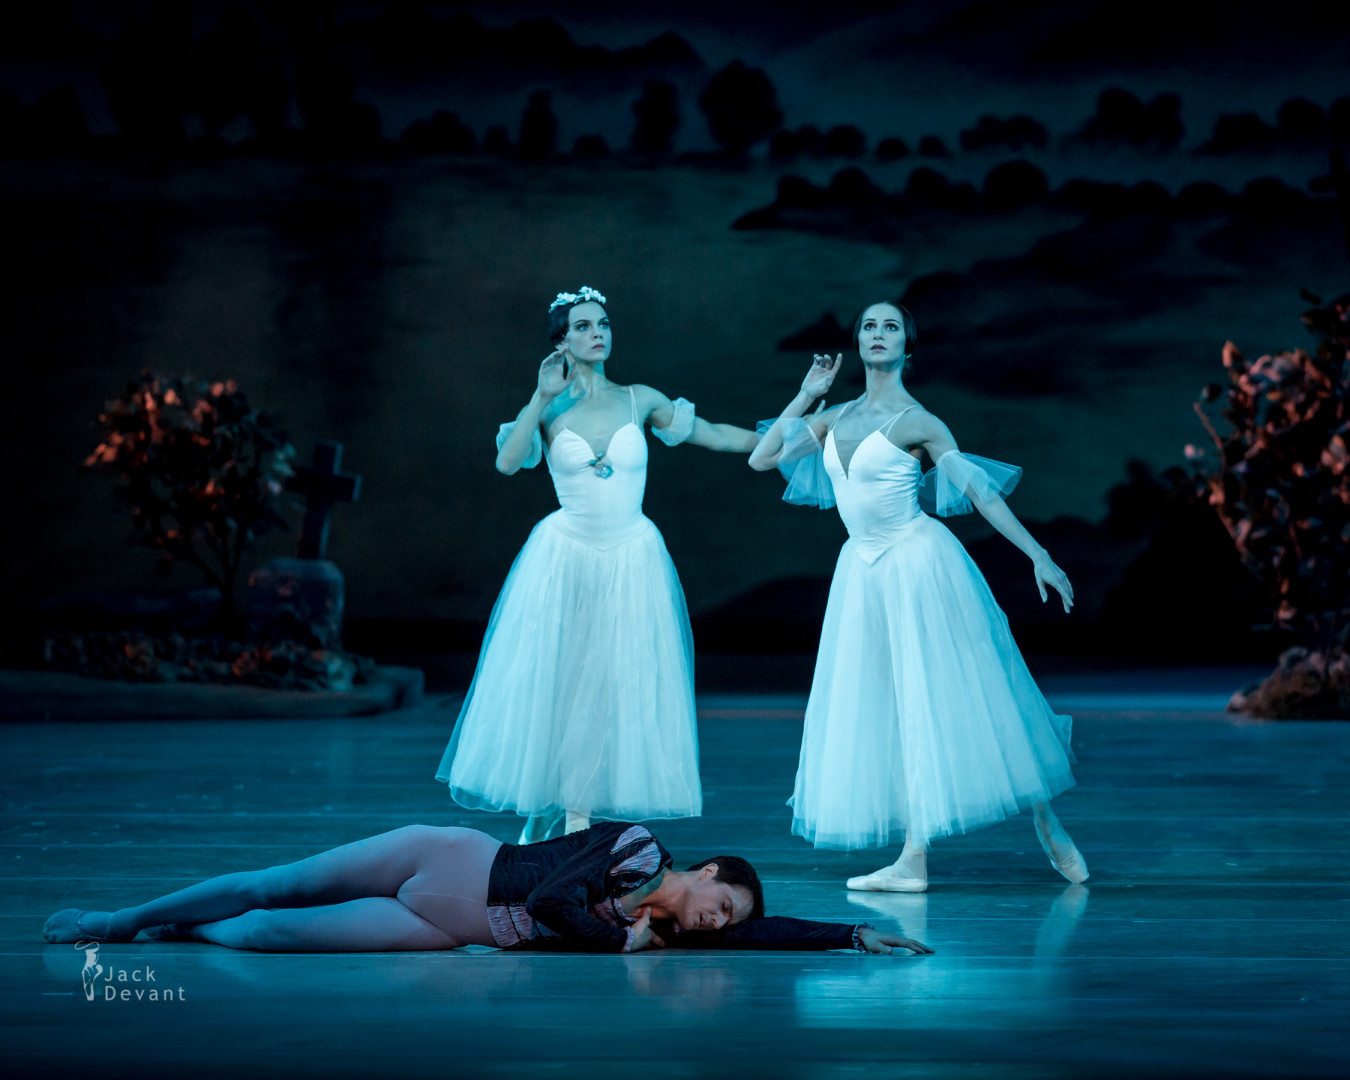 Tatiana Tkachenko as Myrtha in Giselle